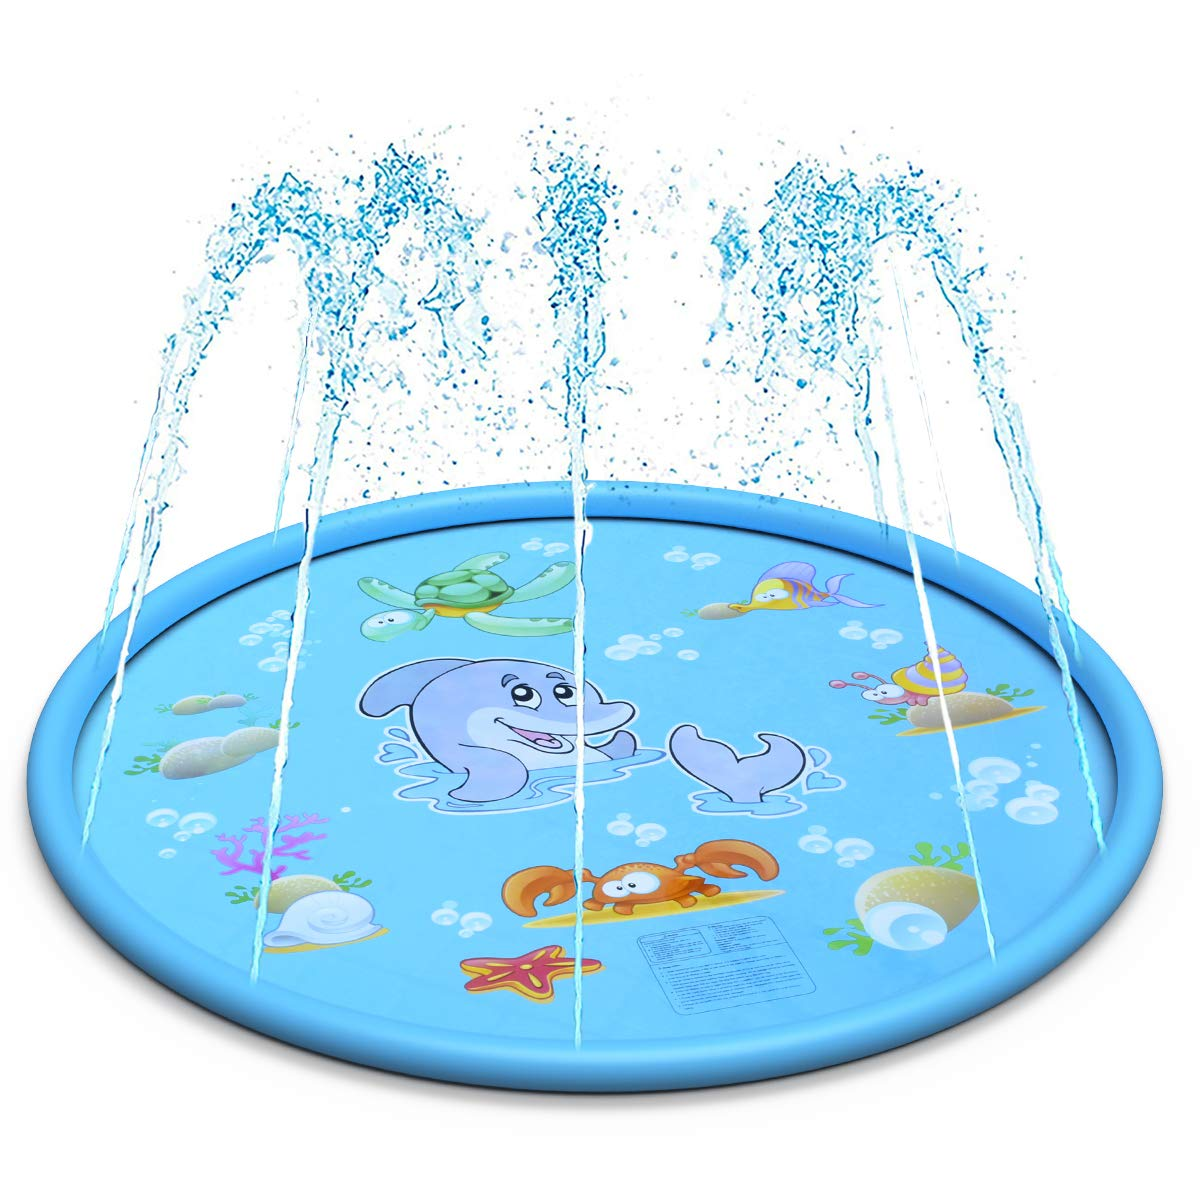 LEEHUR 67'' Sprinkle and Splash Play Mat Outdoor Summer Water Play Pad Toy Swimming Party Gift for Kids Children Infants Toddlers Boys Girls Blue by LEEHUR